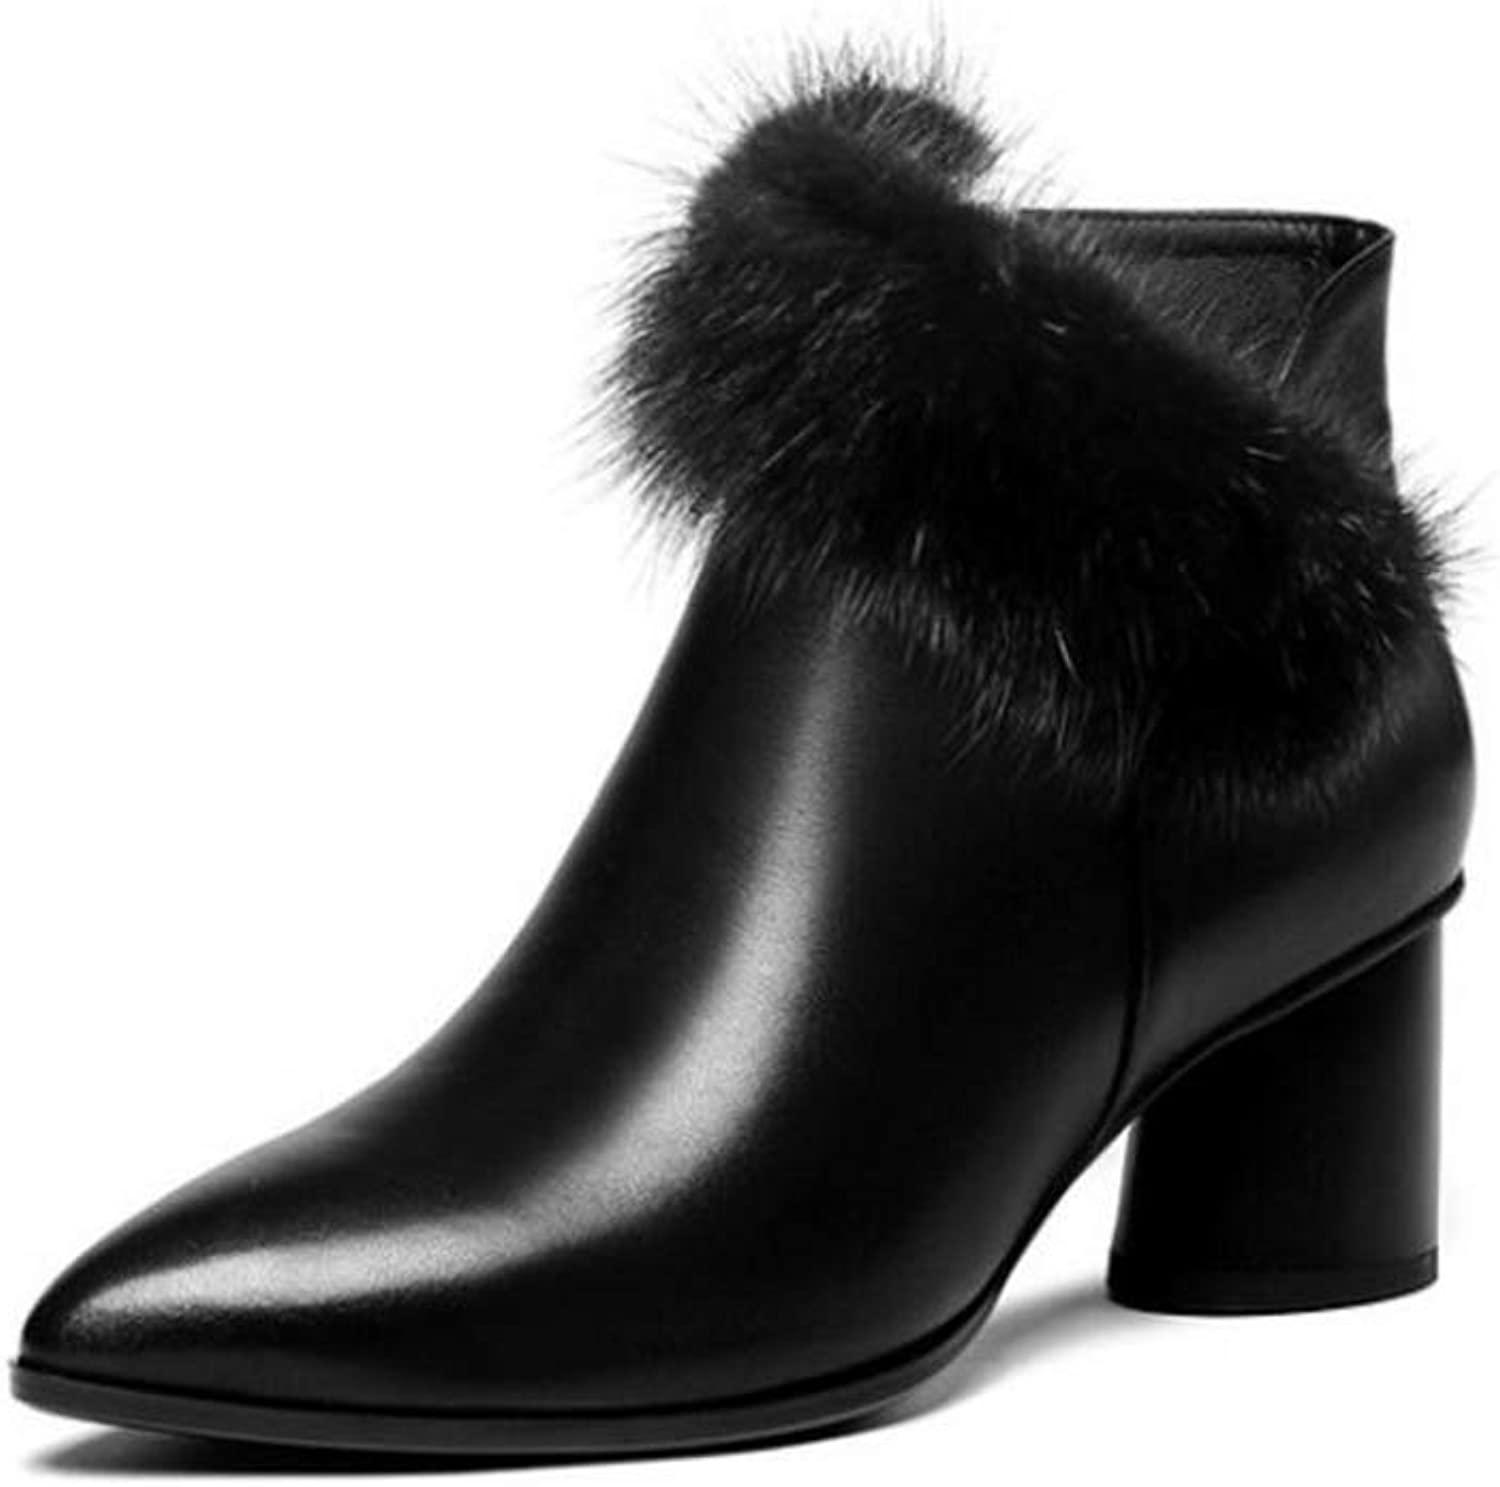 Women's Winter shoes, Leather High-Heeled Ankle Boots Pointed Womens Boots Thick with Velvet Fashion Ladies shoes Martin Boots (color   Black, Size   35)